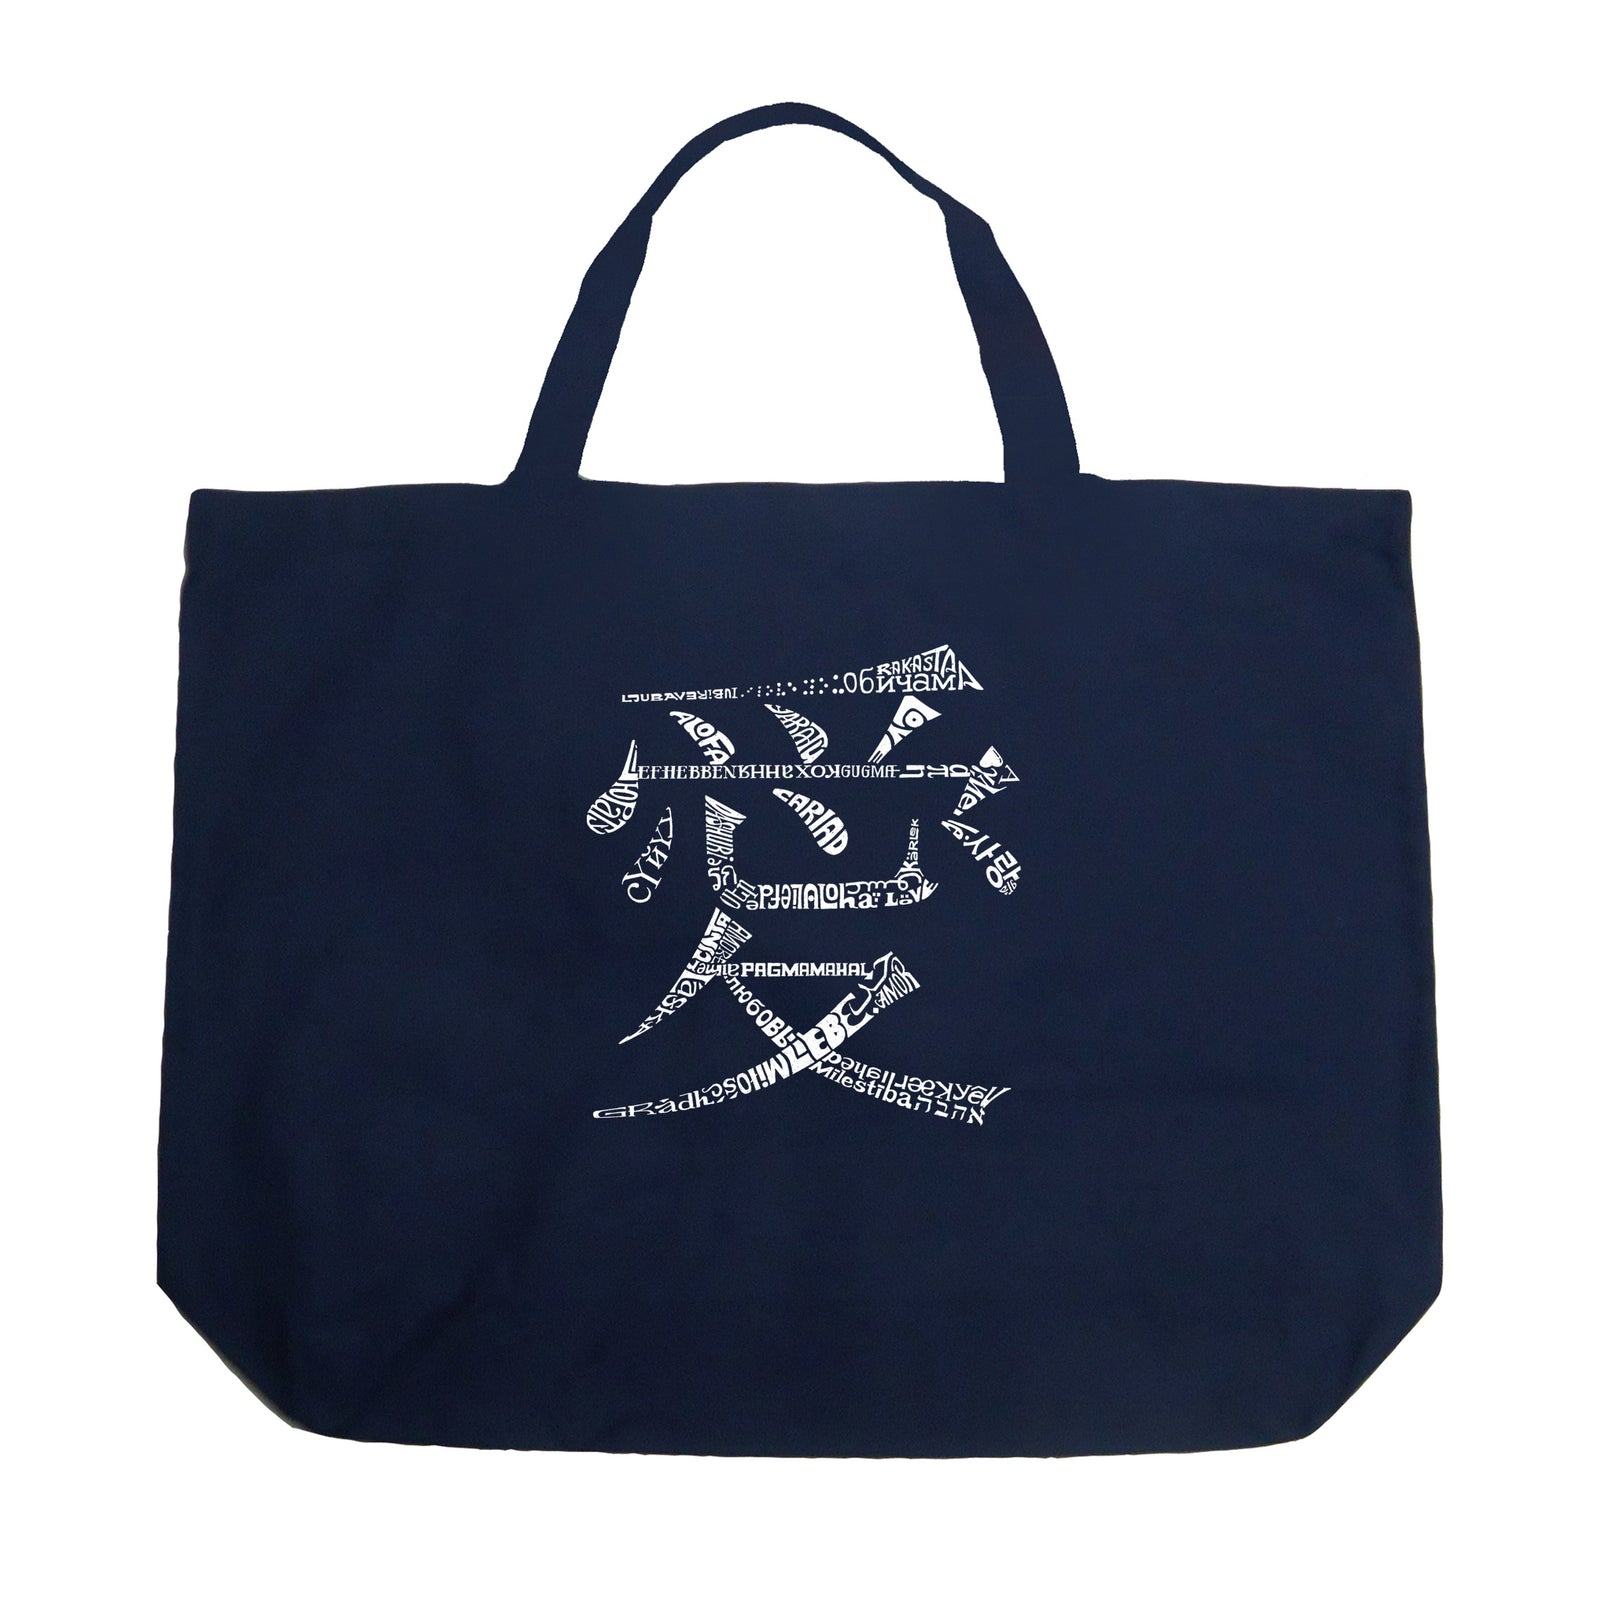 Large Tote Bag - The Word Love in 44 Languages